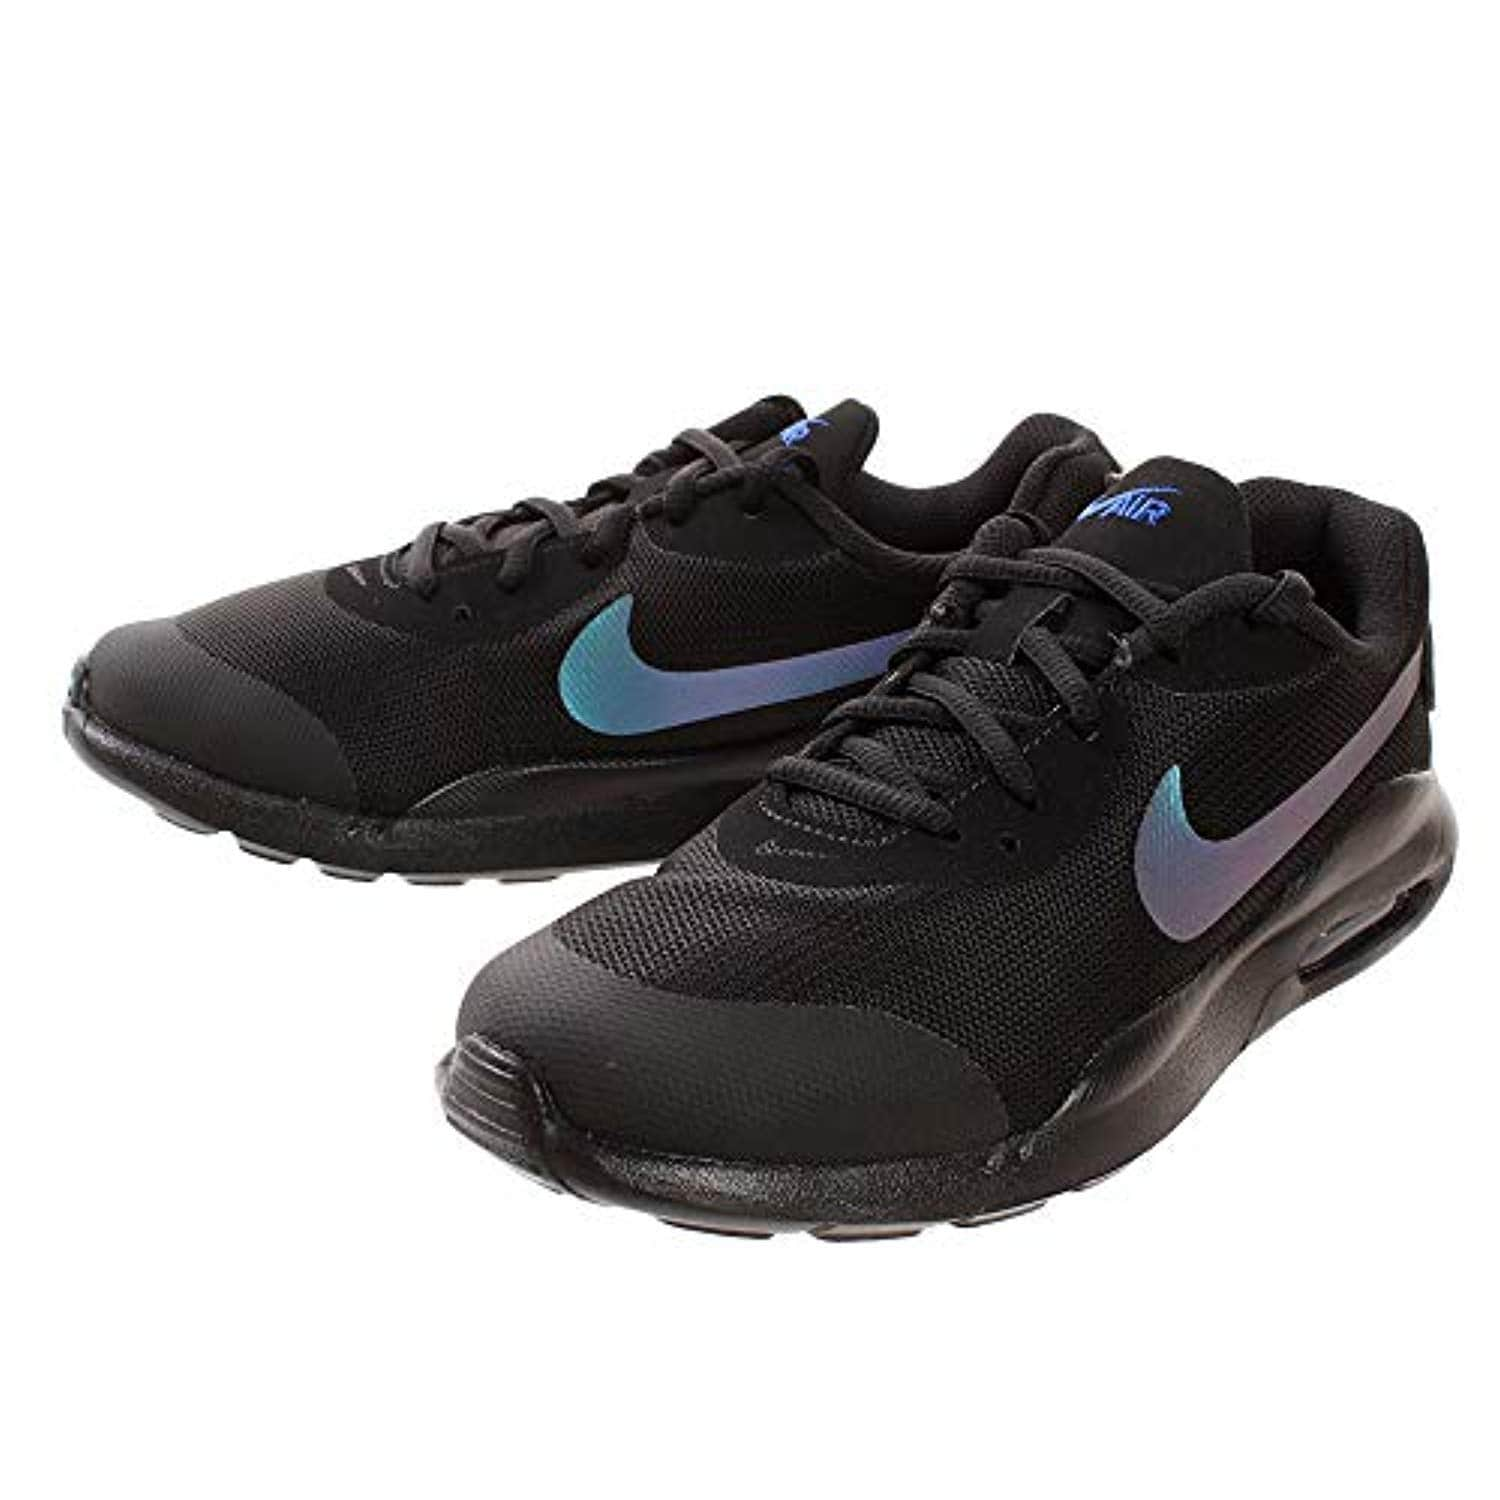 sale uk new products store Shop Nike Kids' Grade School Air Max Oketo Shoes (4, Black/Racer ...